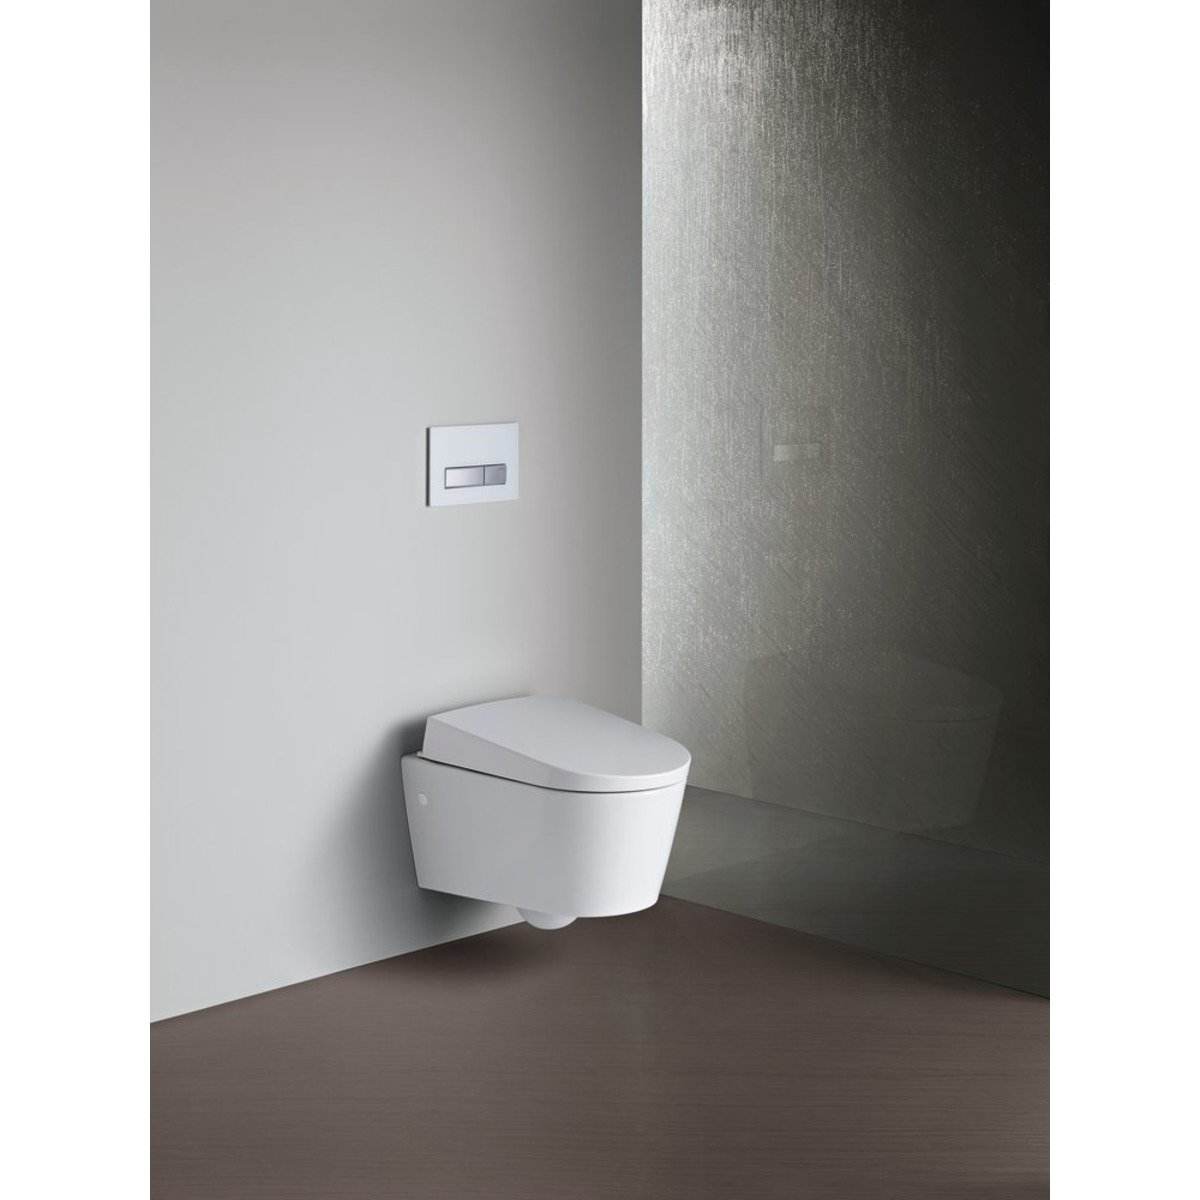 geberit aquaclean sela wc suspendu douche wc blanc 146140111. Black Bedroom Furniture Sets. Home Design Ideas